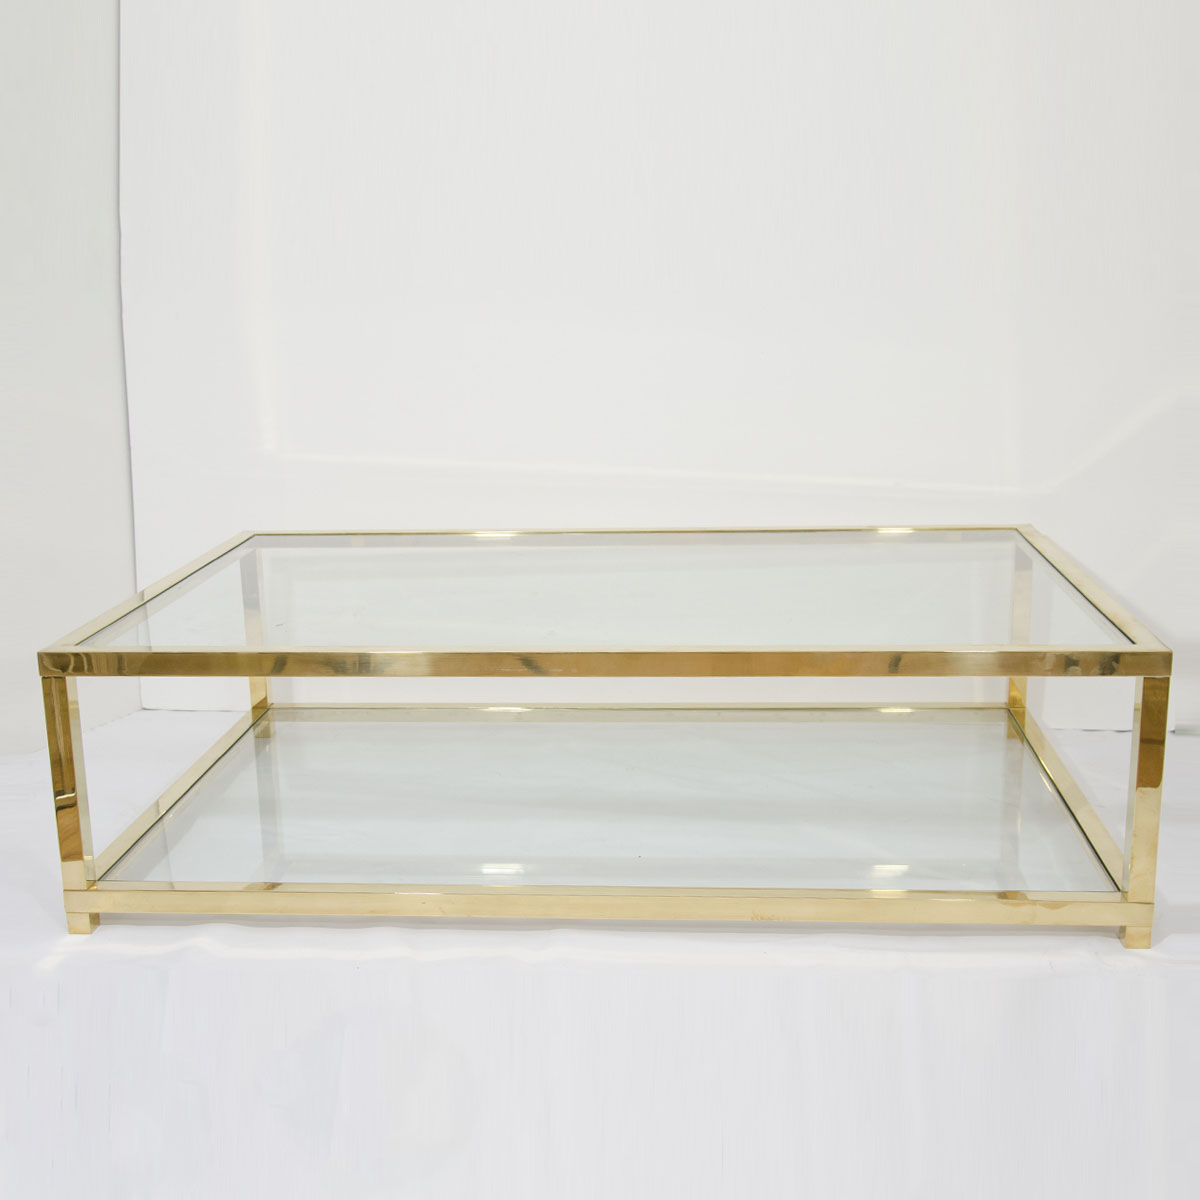 Brass Display Coffee Table: Two-tiered Brass And Glass Coffee Table